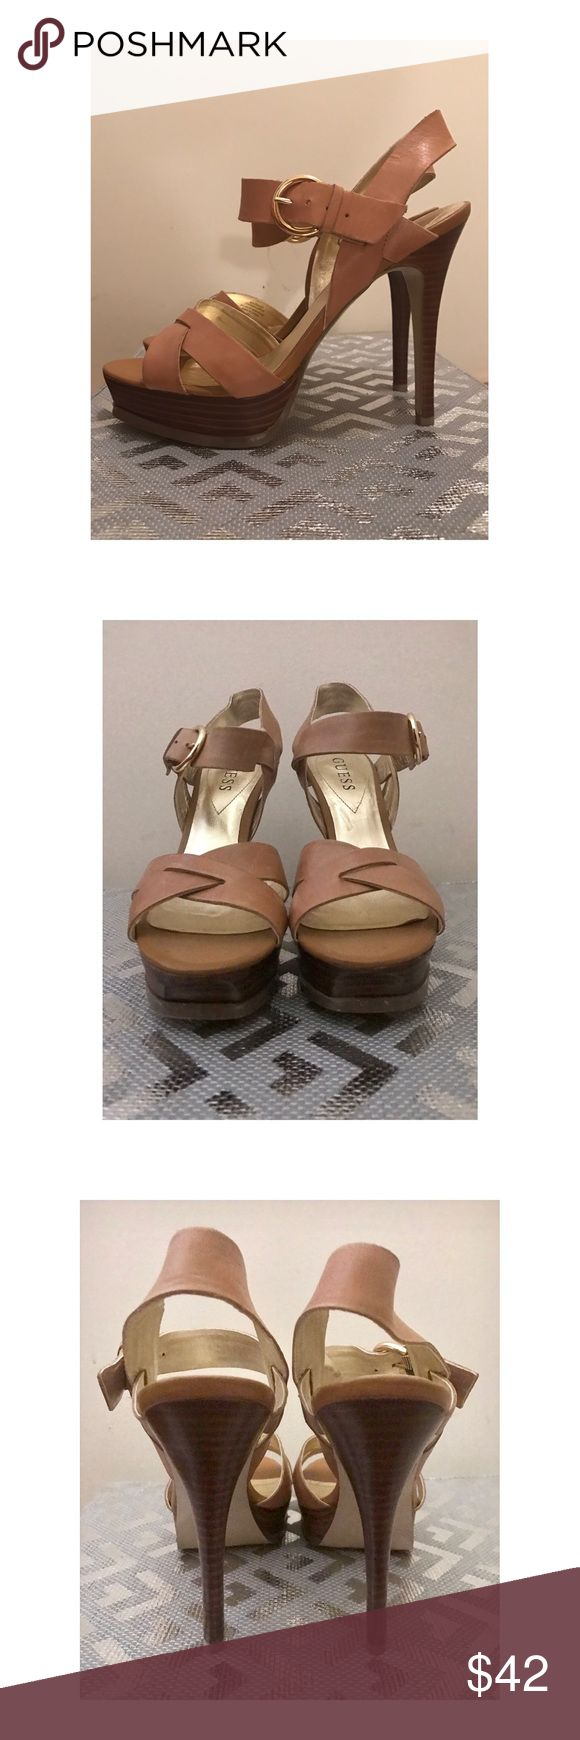 Like New! GUESS HIgh Heel Strappy Sandals Size 7 Worn once to an indoor party, GUESS leather strappy high heel sandals. They look brand new--super cute tan/camel with gold hardware. The Leather is super soft and they look fantastic on. Guess Shoes Heels